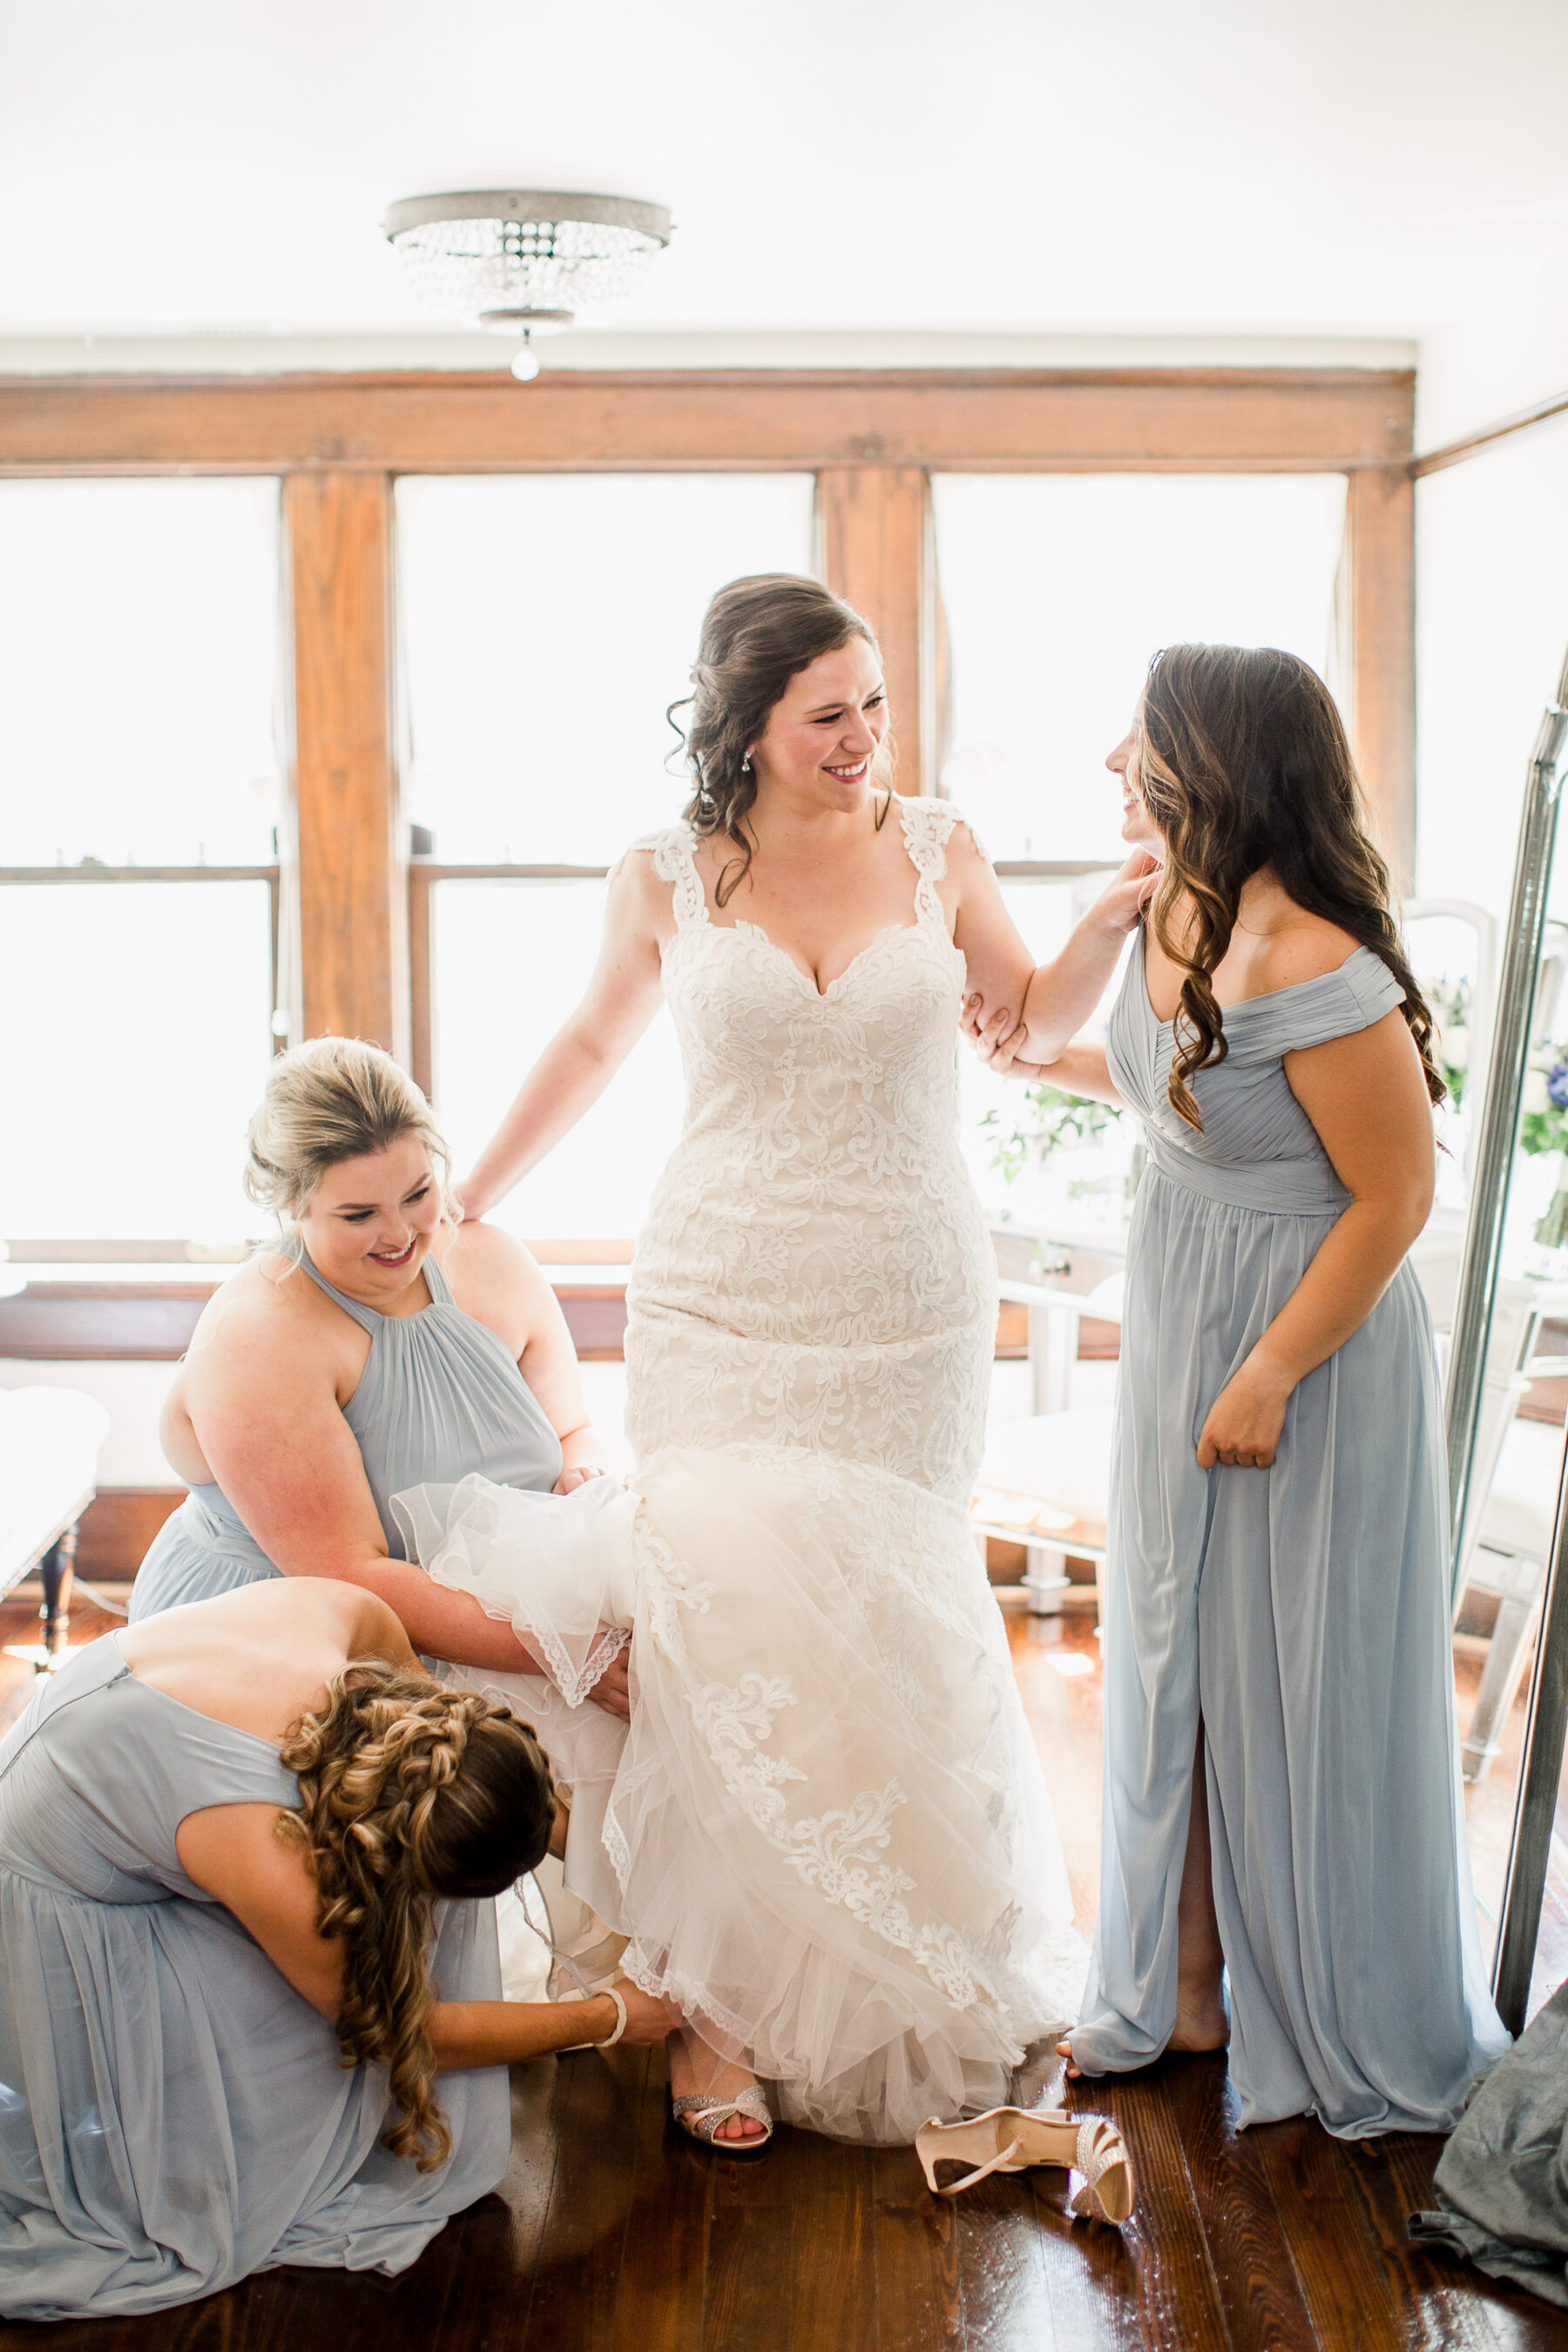 Bridal party getting ready photo ideas   Nashville Bride Guide